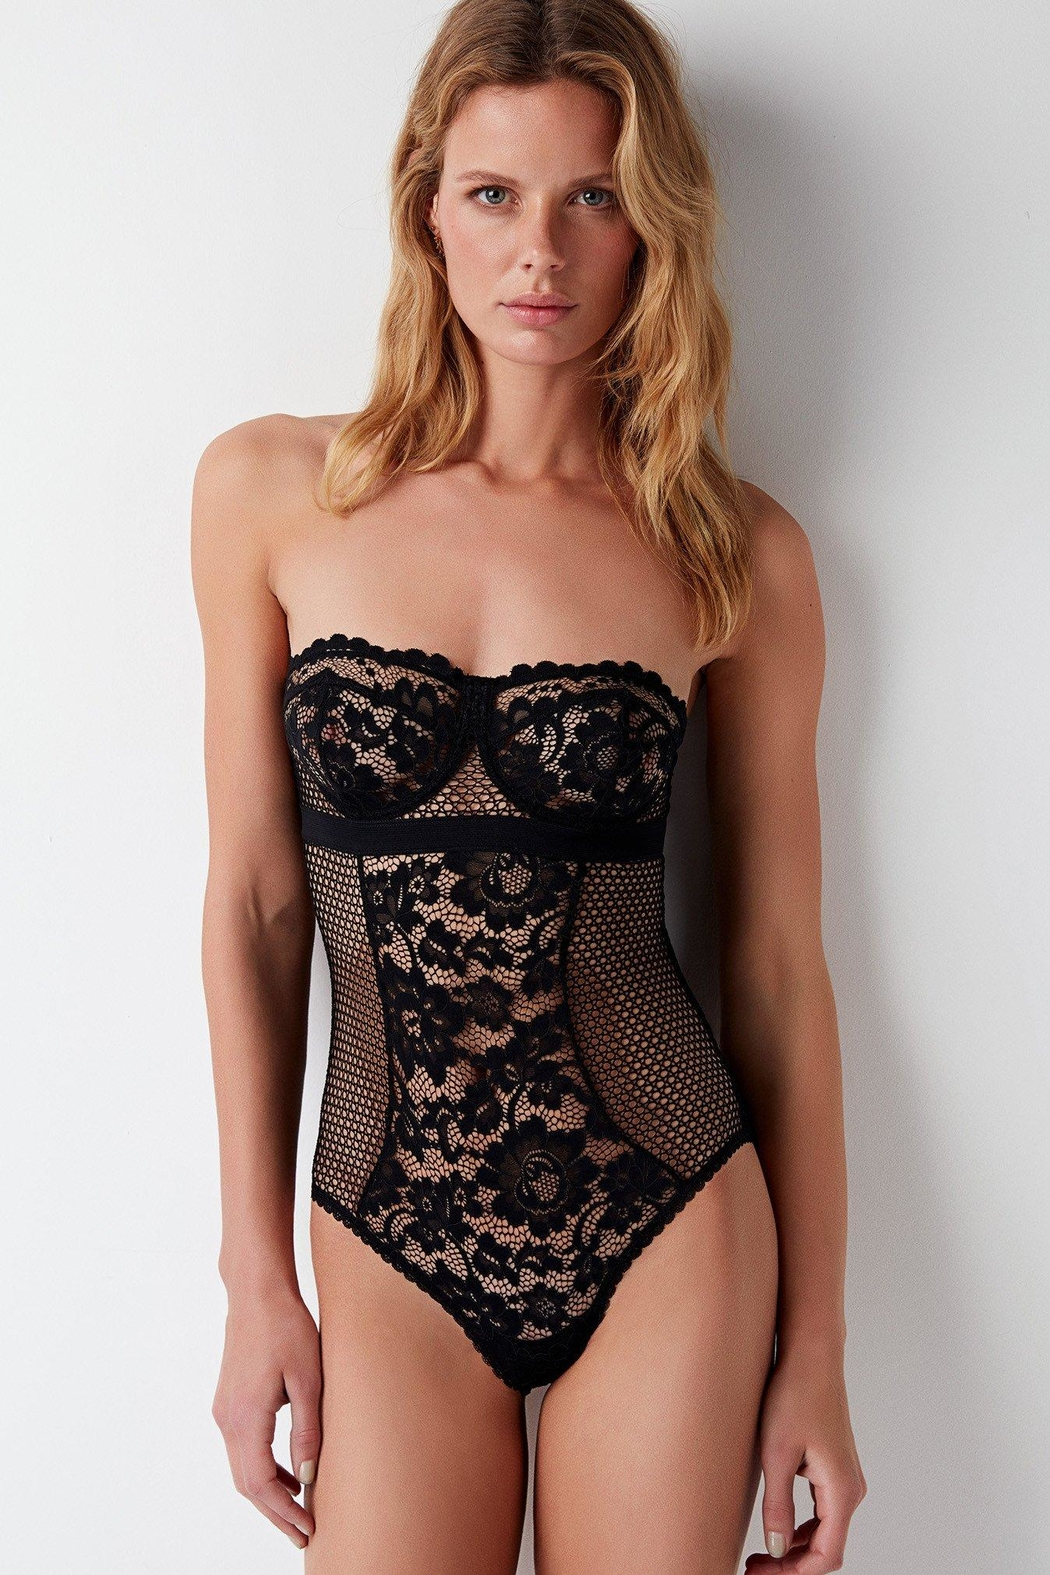 Else Lingerie Petunia Strapless Bodysuit - Front Cropped Image